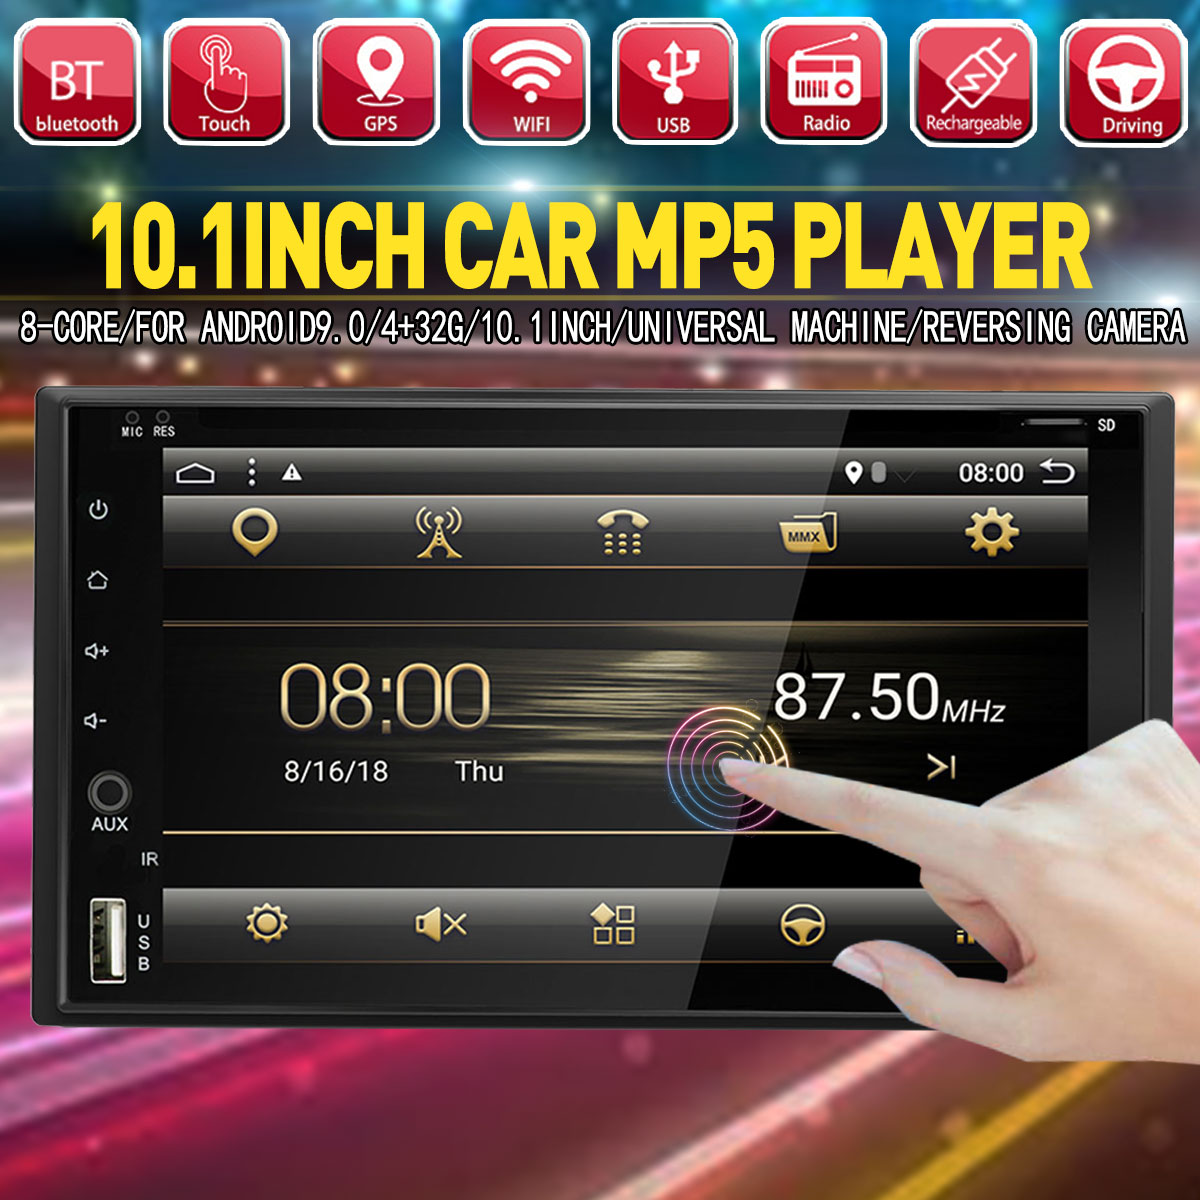 10.1 Android 9.0 8core 4+32G Car MP5 Player PX6 bluetooth Radio GPS 2DIN Touchable Car Multimedia Player with Backup Camera10.1 Android 9.0 8core 4+32G Car MP5 Player PX6 bluetooth Radio GPS 2DIN Touchable Car Multimedia Player with Backup Camera